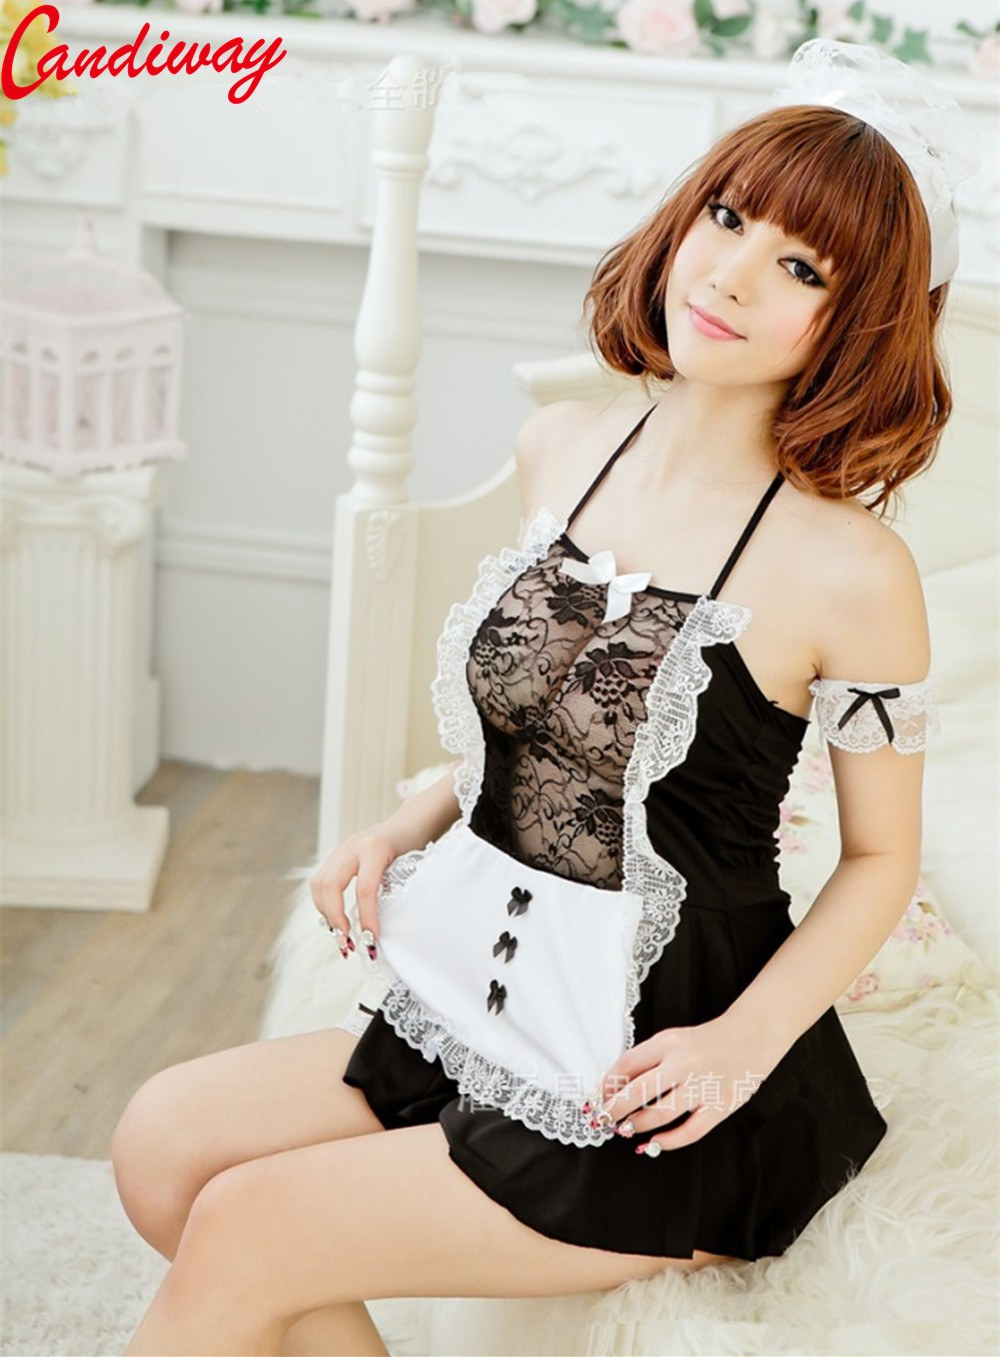 Cosplay Maid Clothes - Sexy Lace Lady Sex Uniform